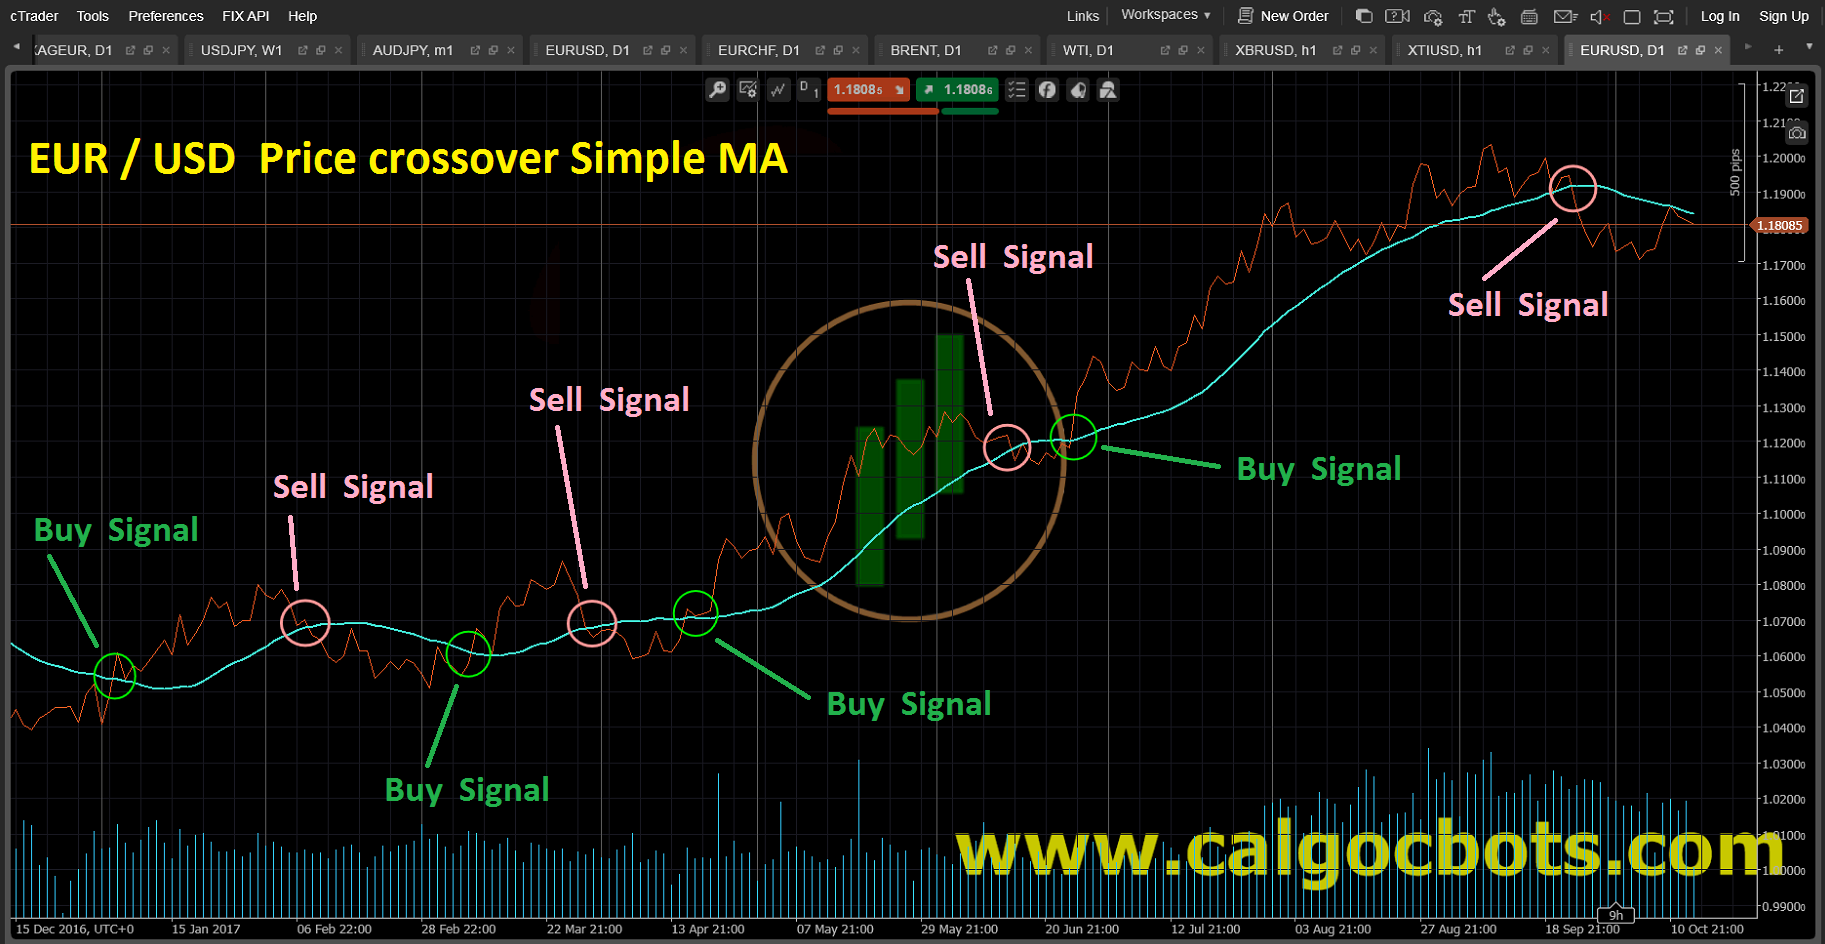 Price Crossover Simple MA Line_Chart_EUR_USD_cAlgo_cBots_cTrader_01